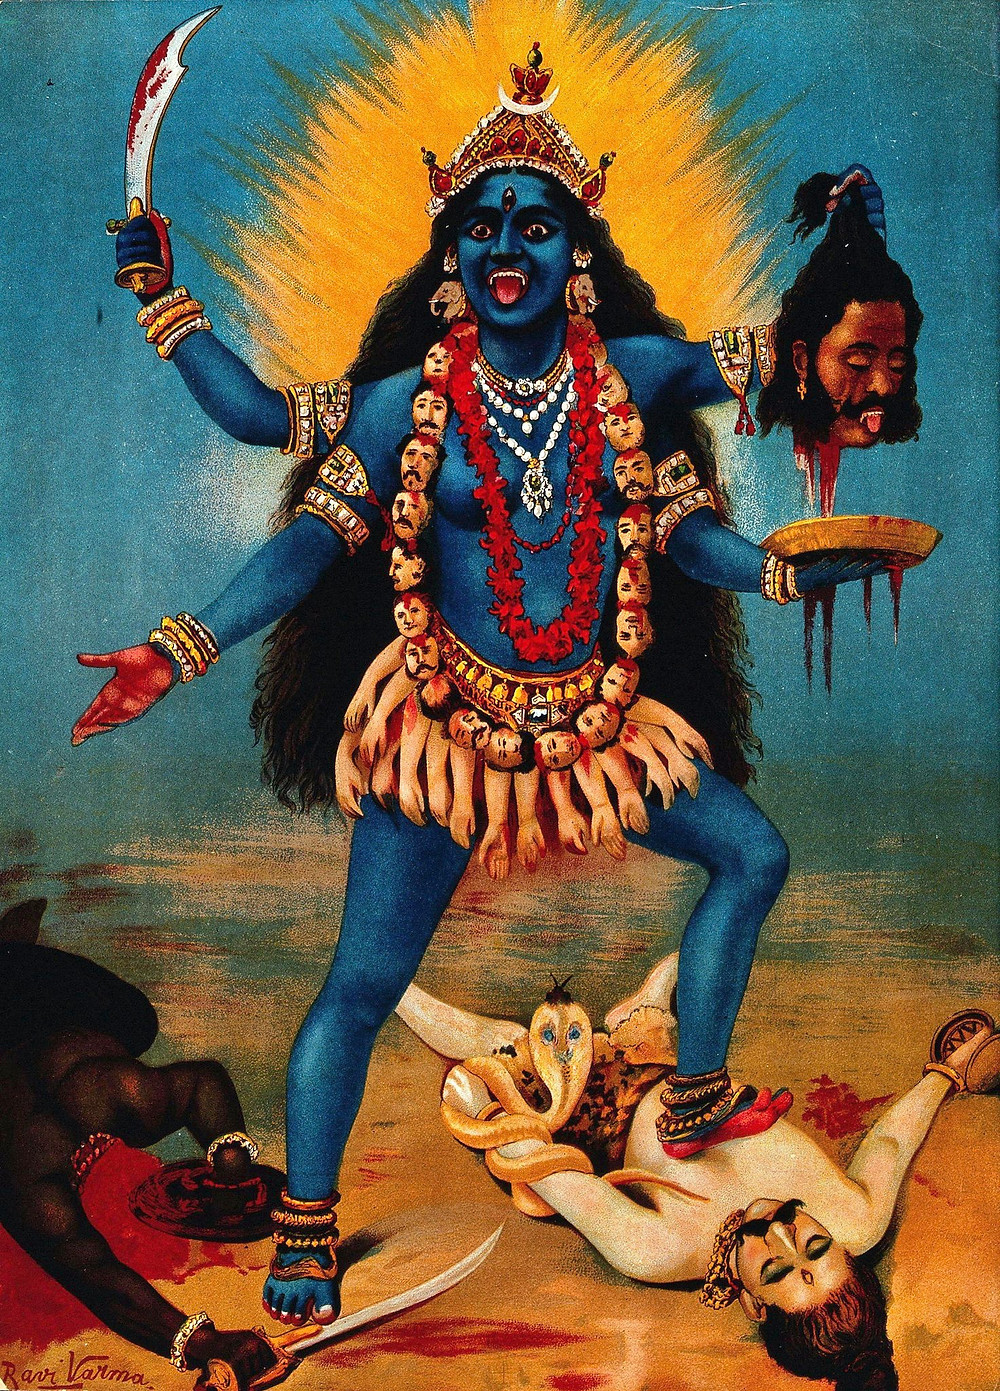 The Darkness appears in many forms. Here she is as the Hindu goddess, Kali.